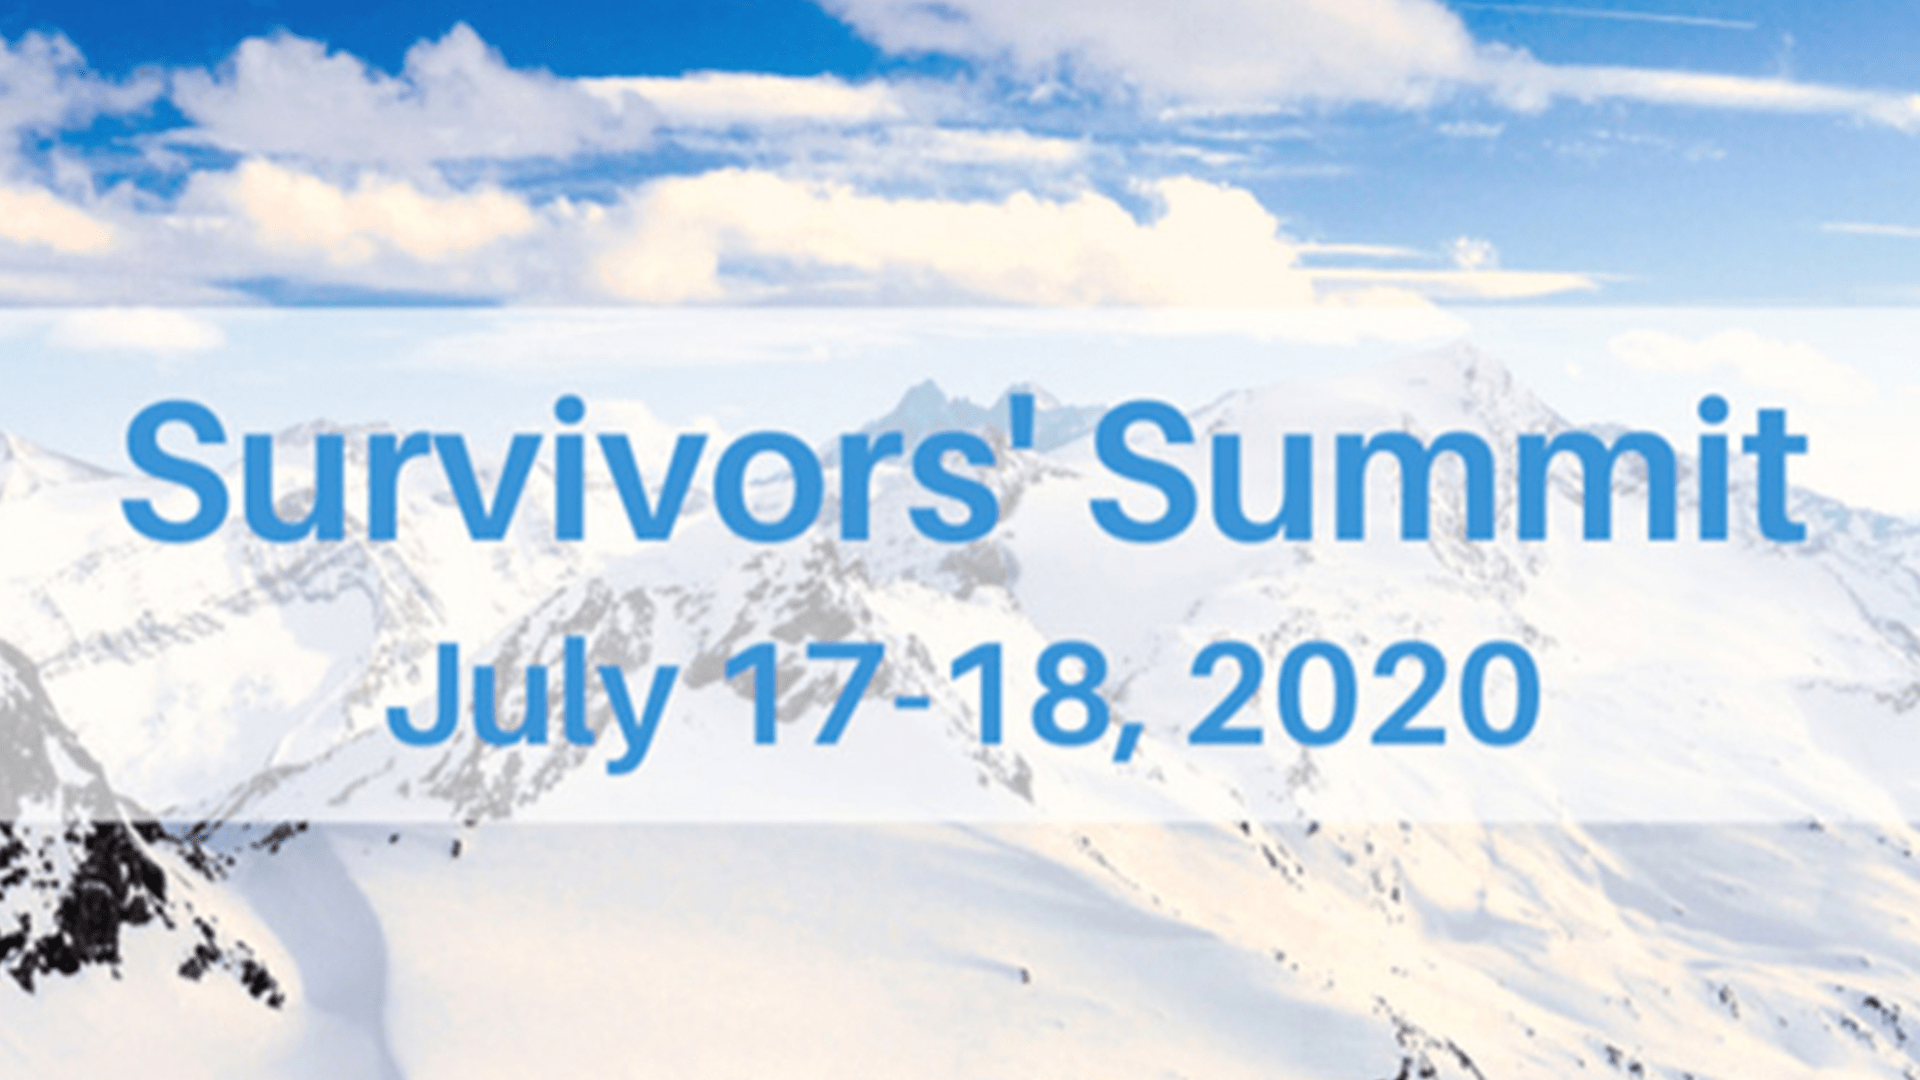 Summit for Survivors of the Sexual Revolution